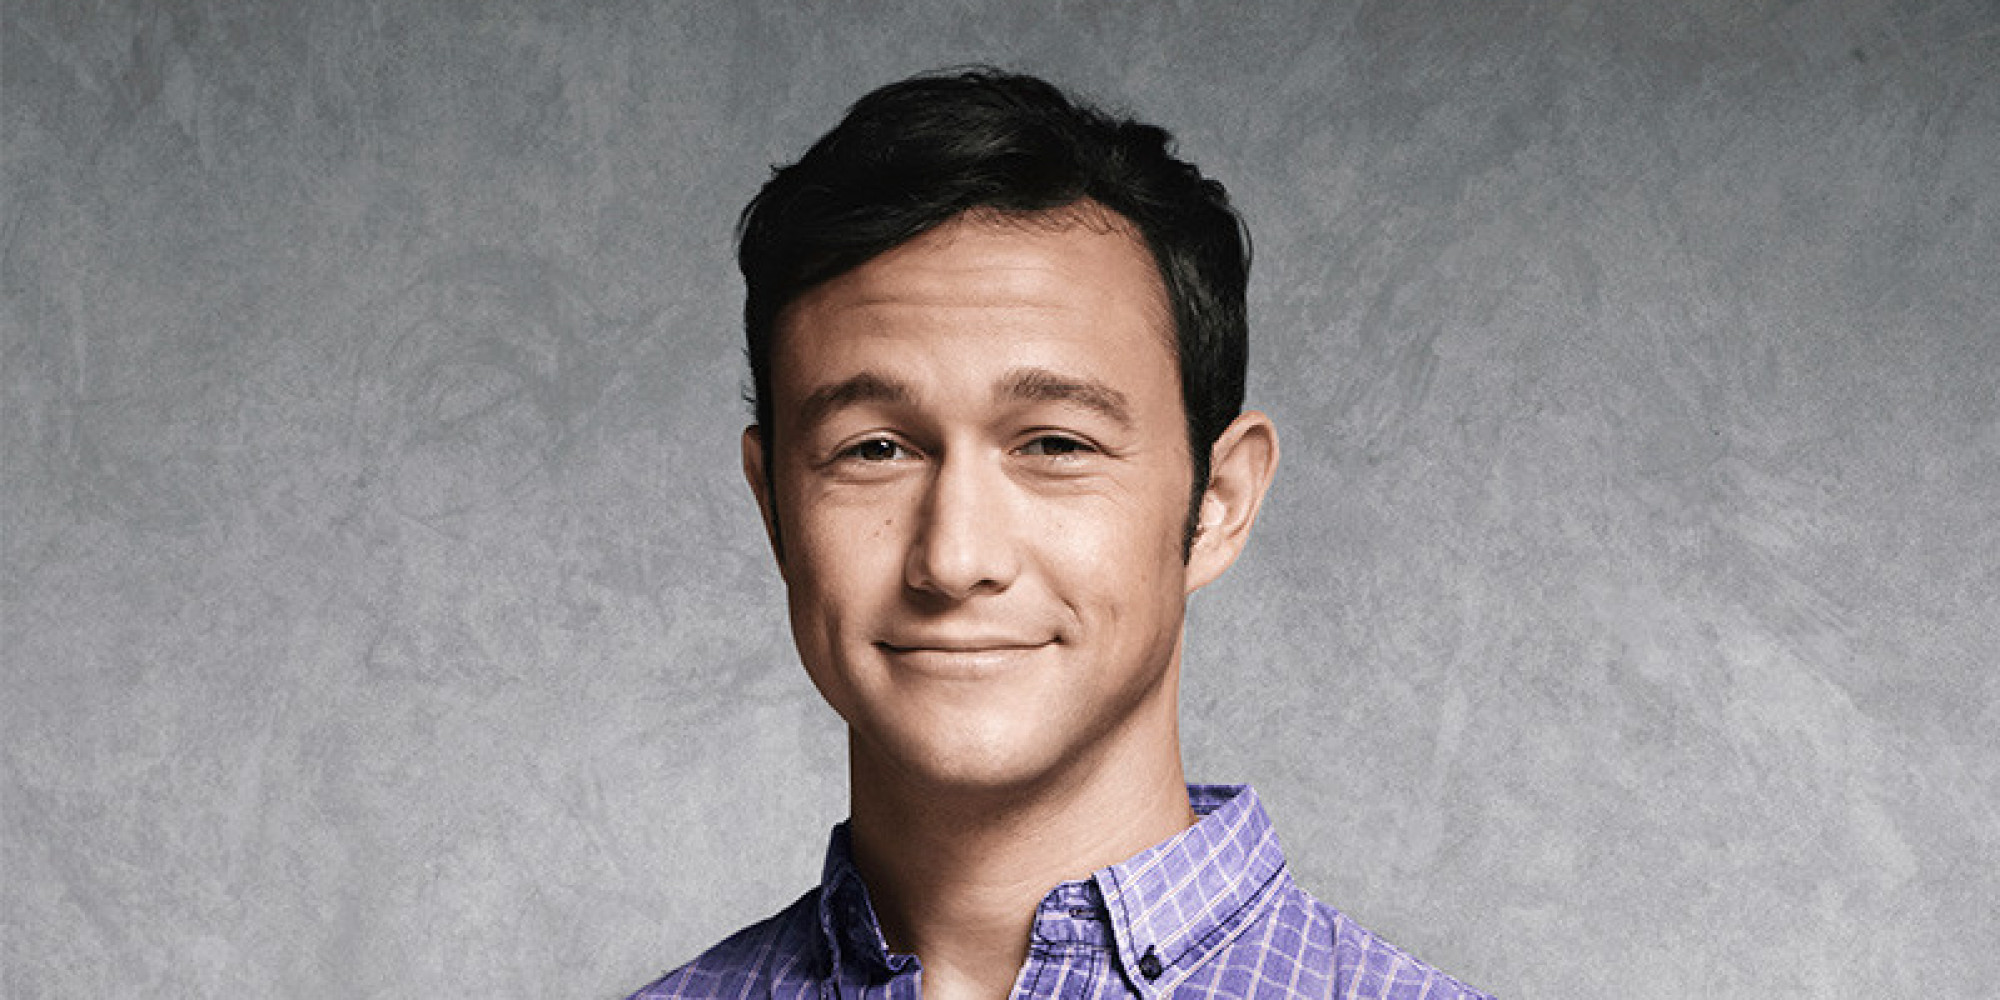 5 Things Joseph Gordon-Levitt Knows For Sure | HuffPost джозеф гордон левитт